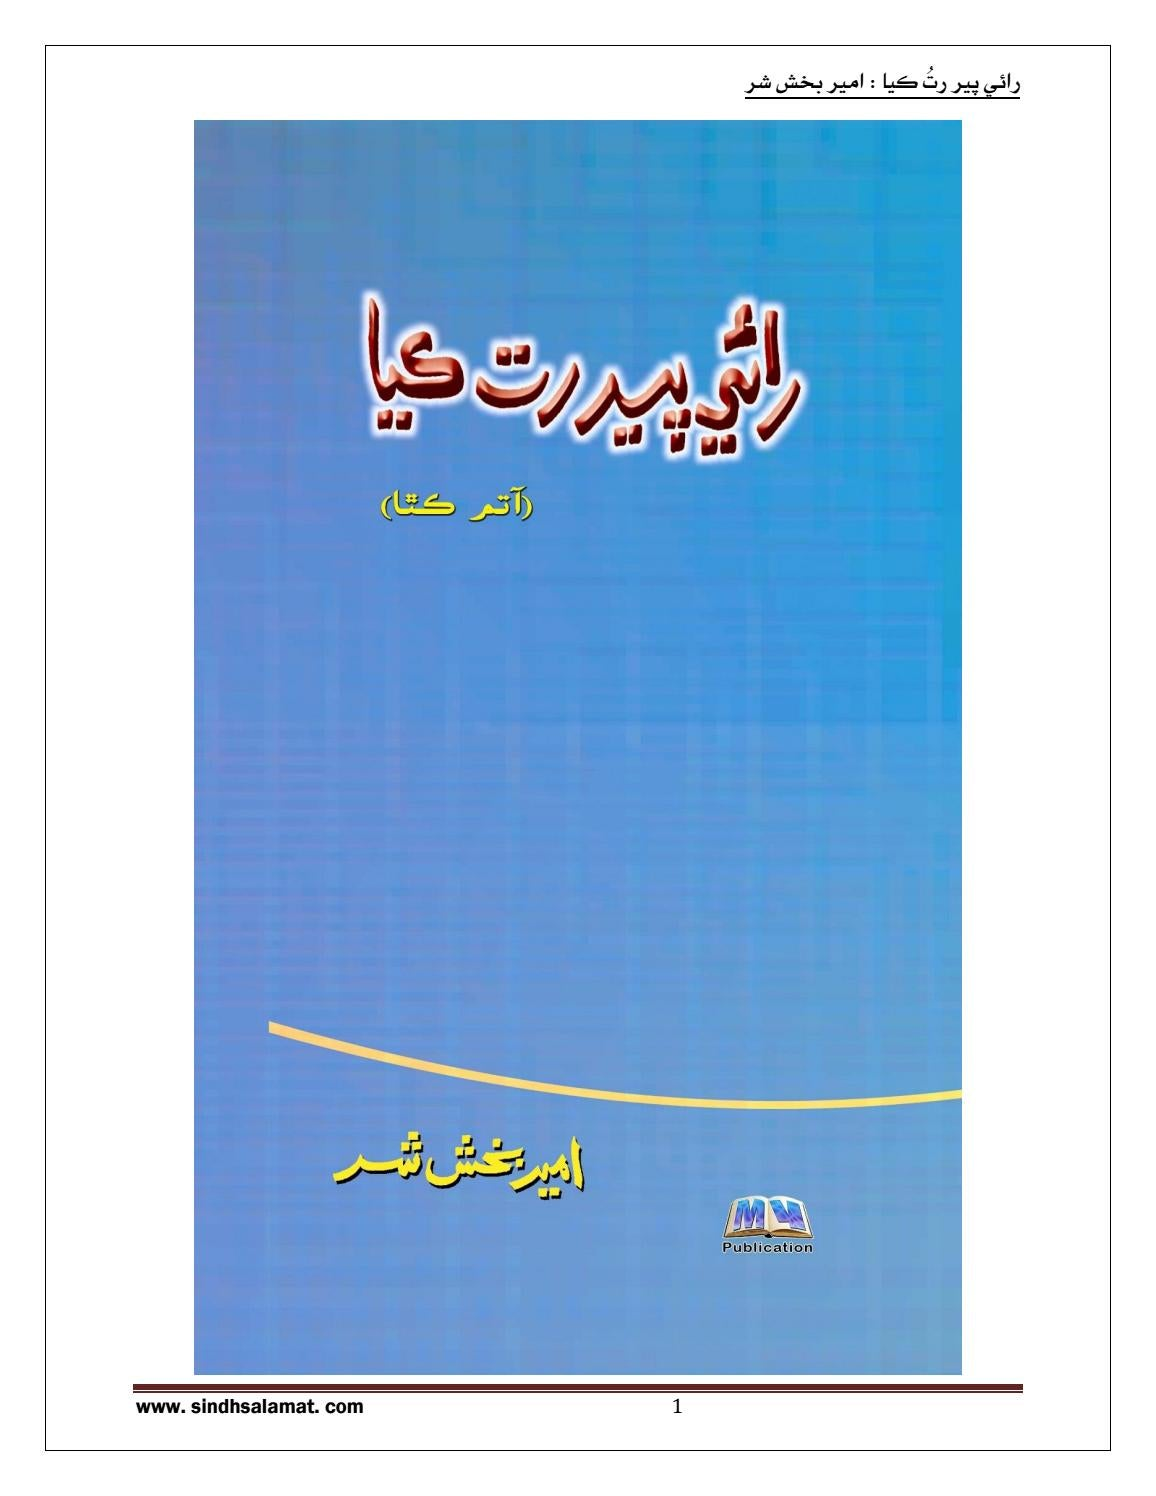 586c600cdf2eb رائي پير رت ڪيا   امير بخش شر by Government Elementary College of Education  Thatta - issuu